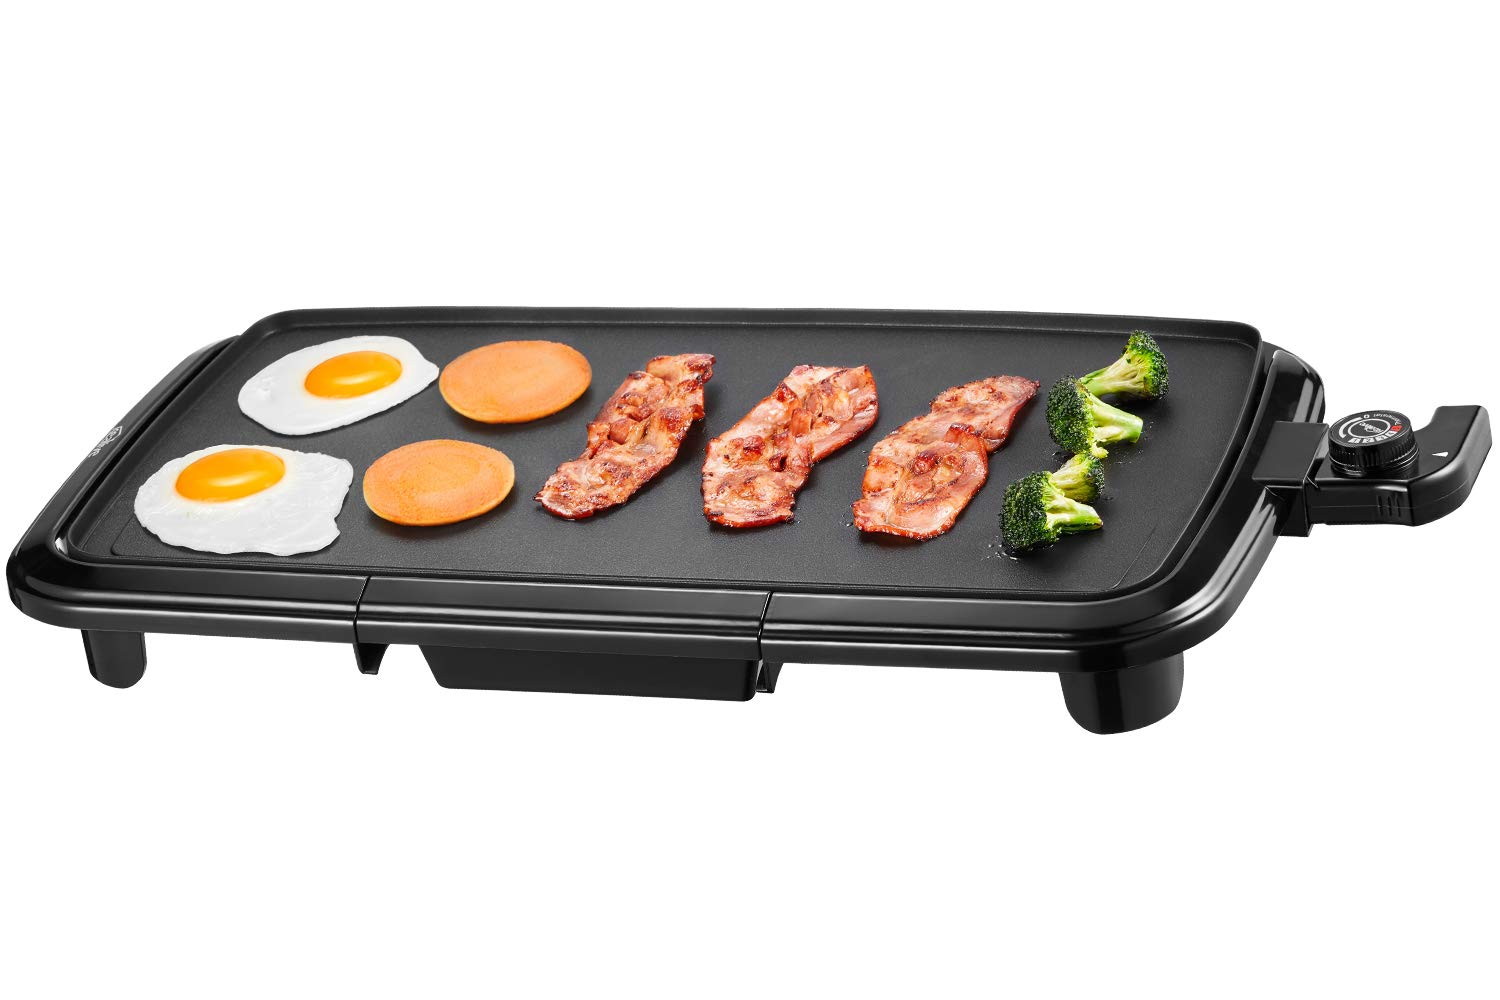 Kealive Griddle, Family-Sized Electric Grill Griddle 1500W with Drip Tray, Non-stick, 10''x20'', Black